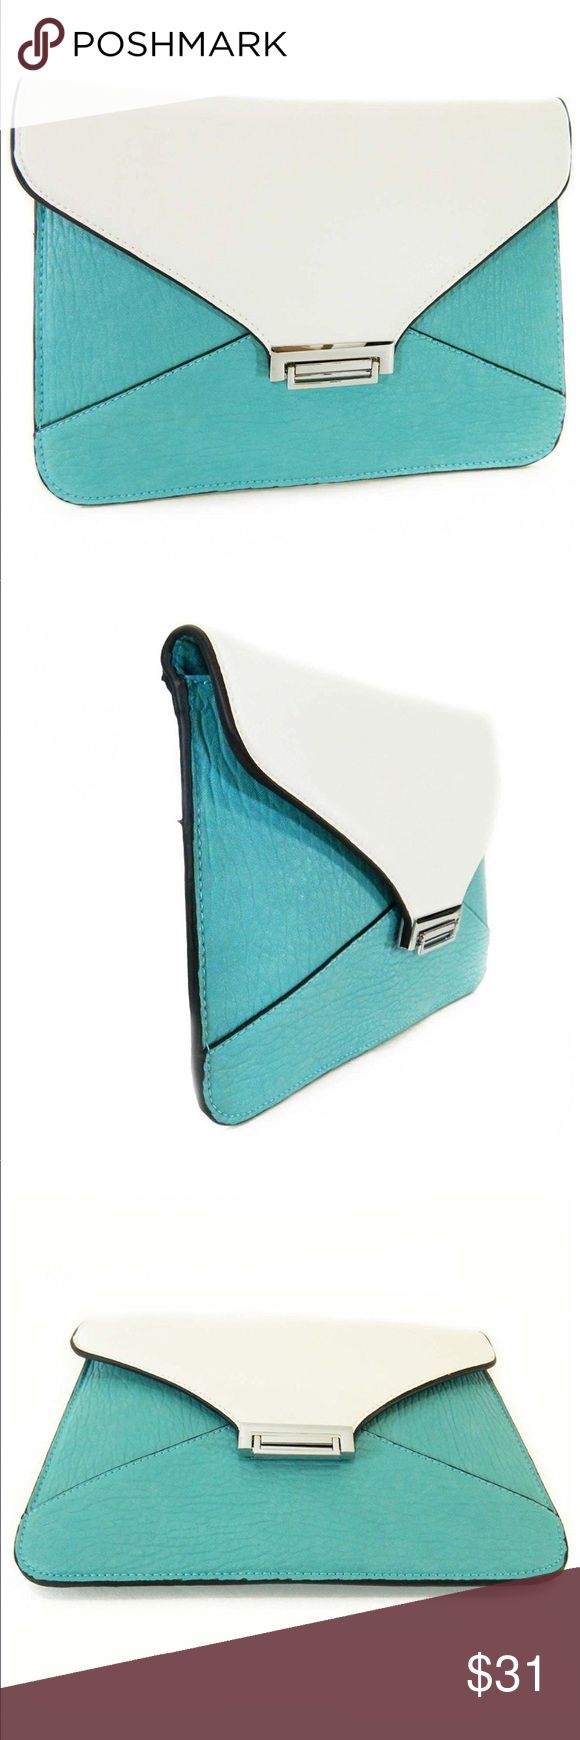 """Turquoise Blue and White Envelope Clutch Color:  turquoise and white;  dimensions:  12""""x 8"""";  2-interior slip pockets;  1-interior zipper pocket;  silver tone hardware Bags Clutches & Wristlets"""